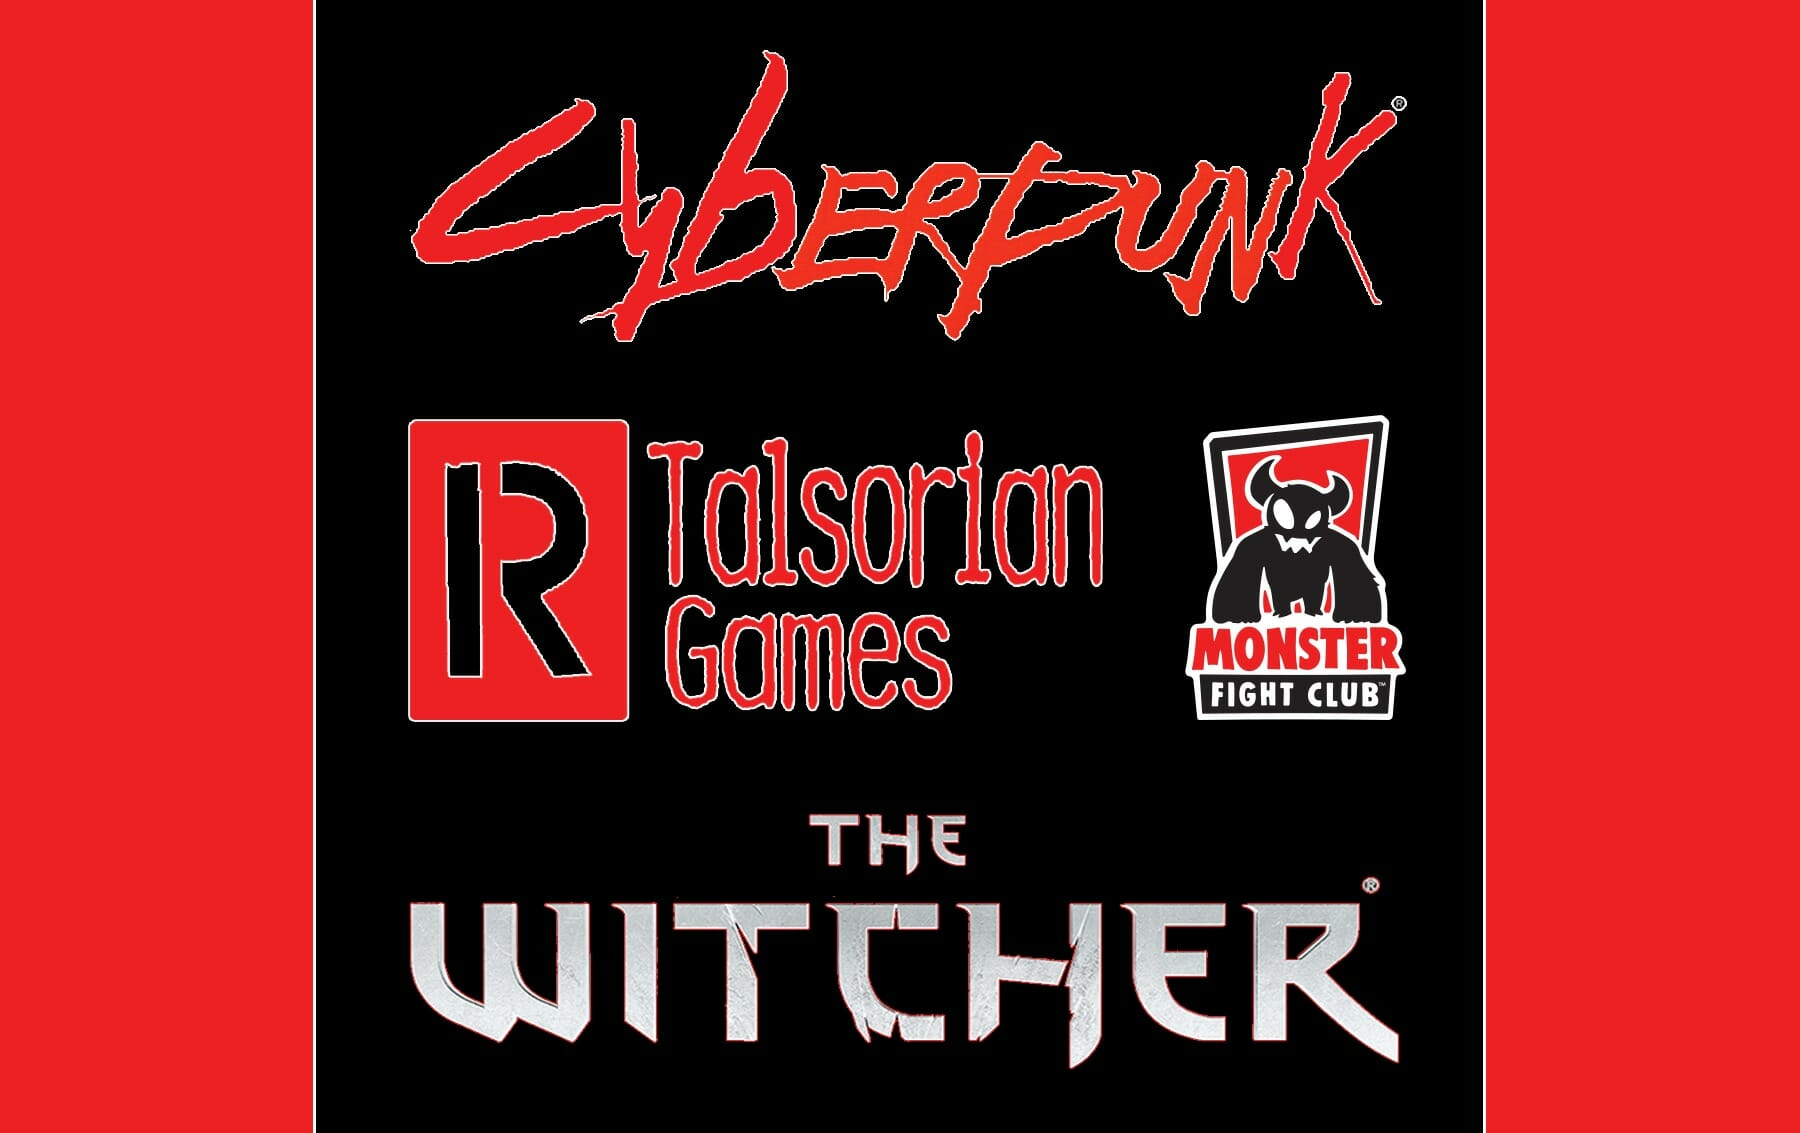 R Talsorian Games and Monster Fight Club